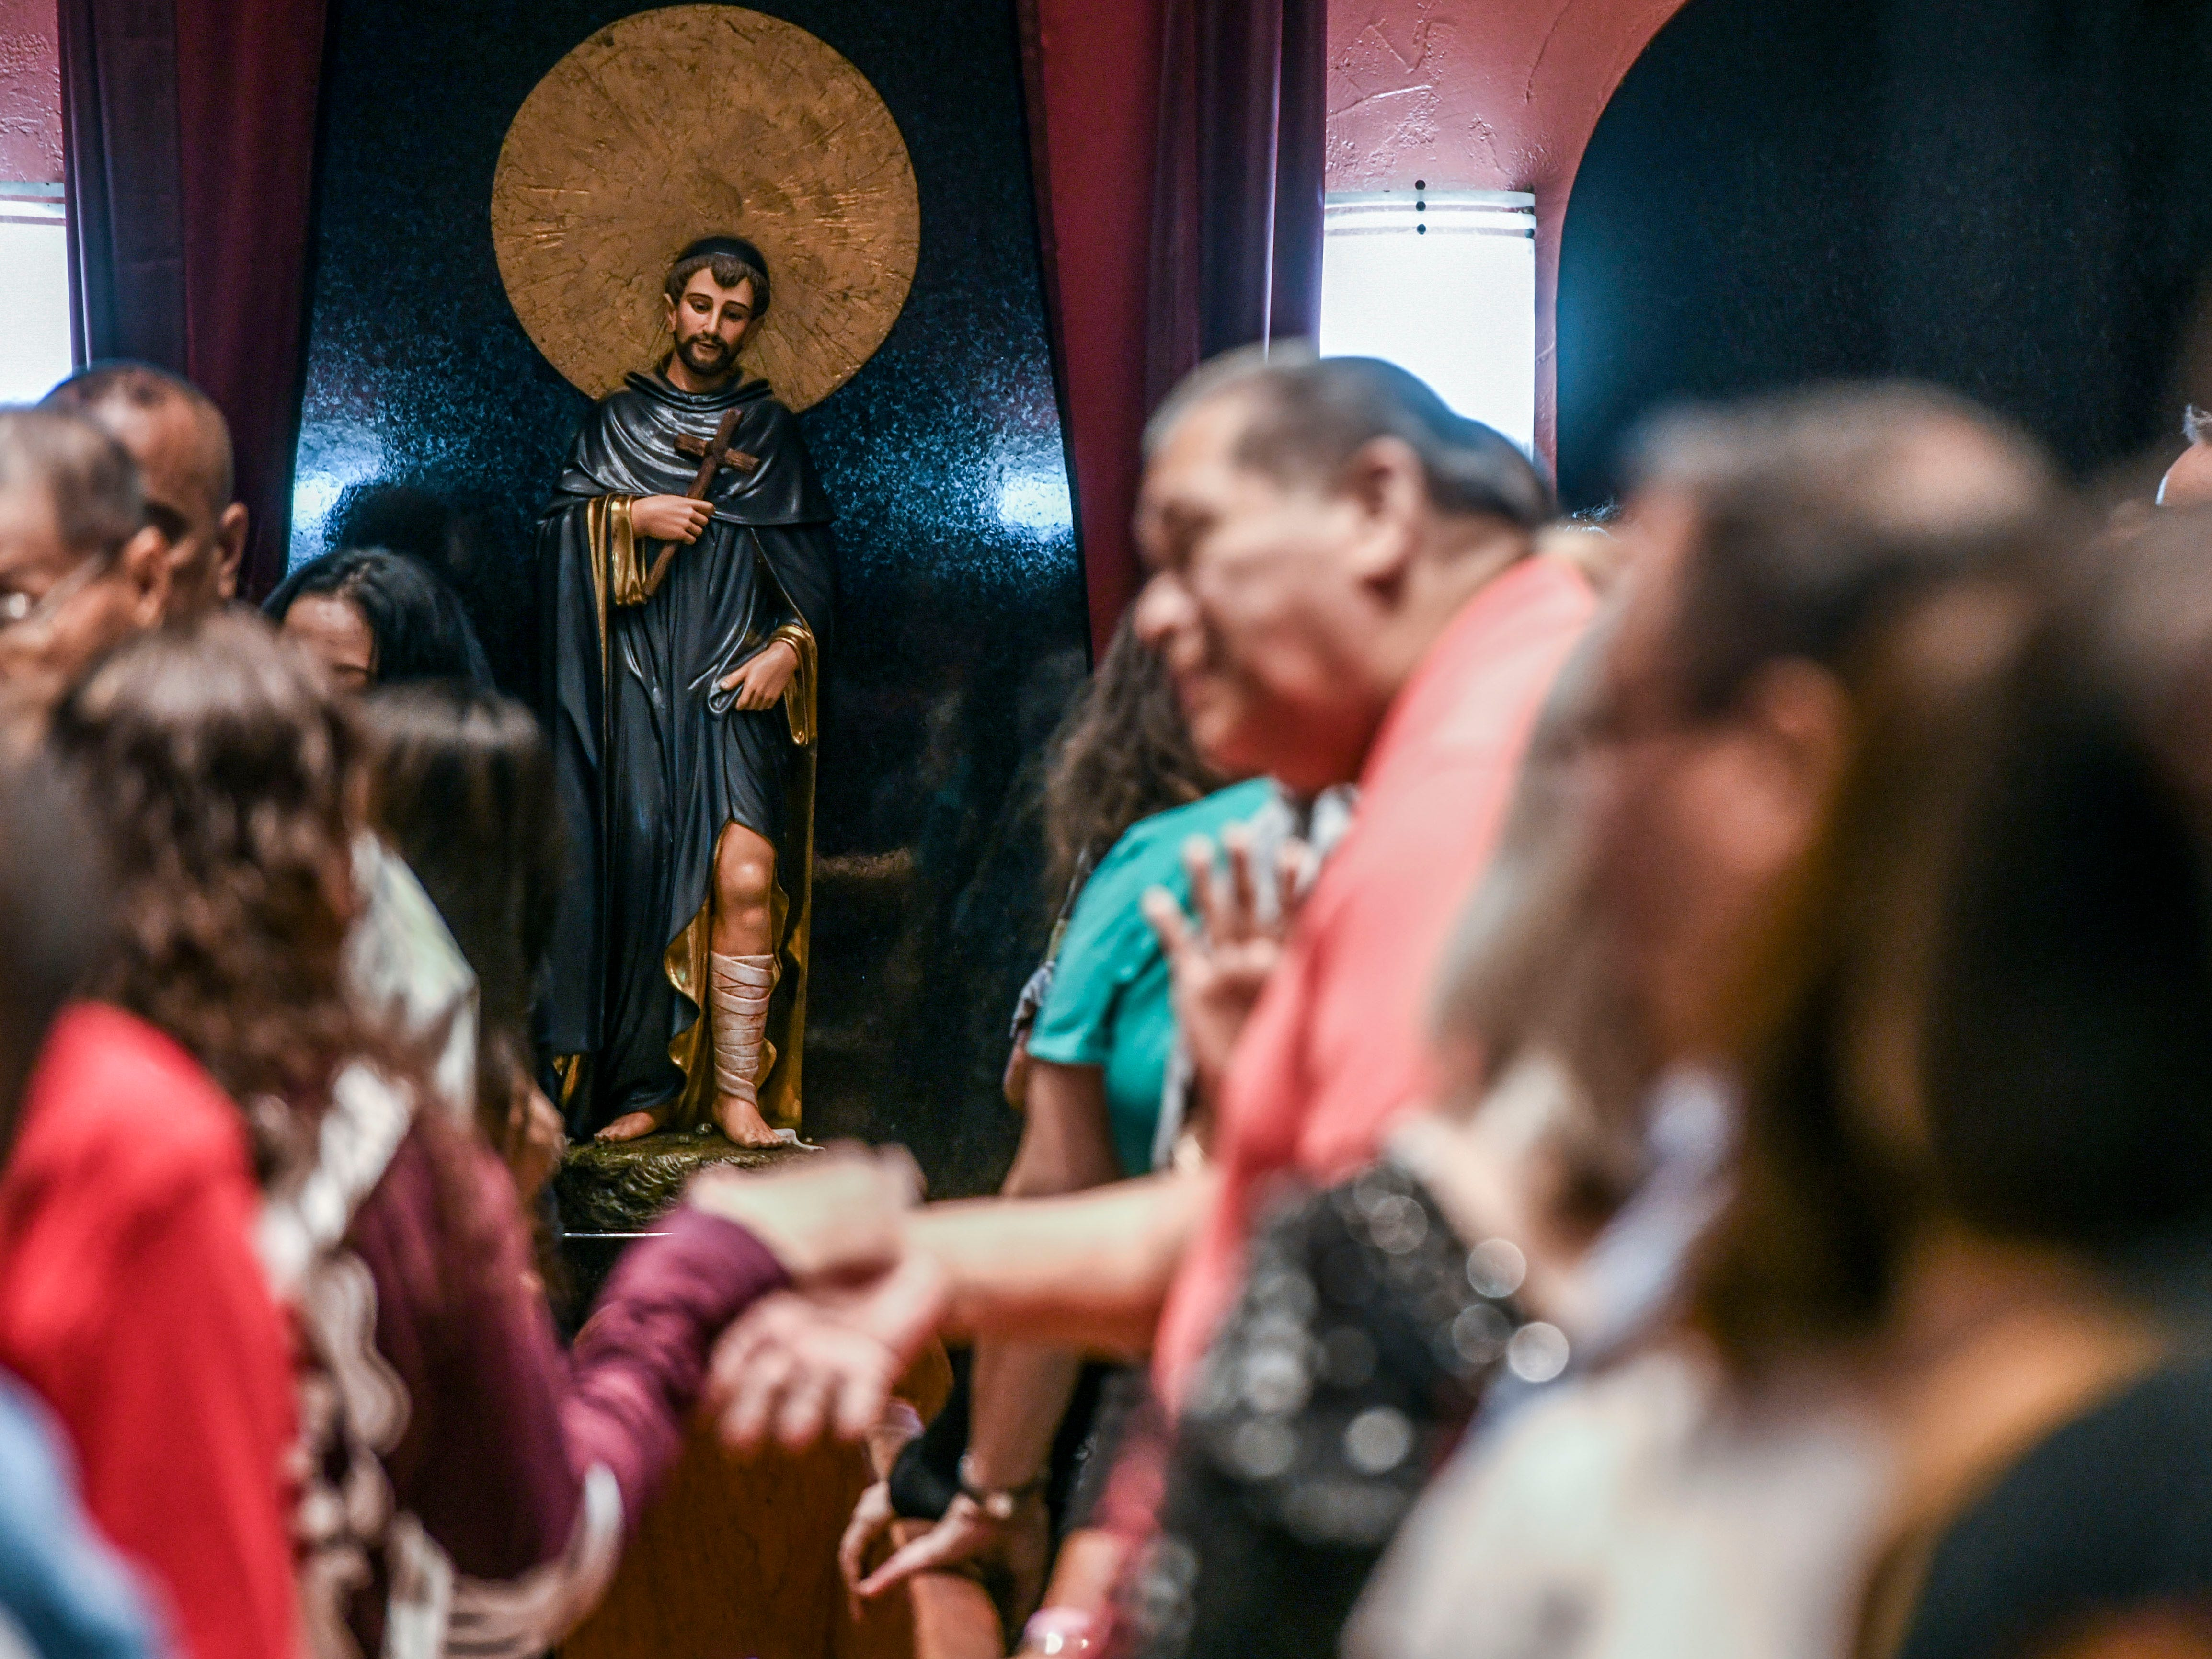 A statue of St. Peregrine looks down on parishioners as they offer each other a sign of peace during the inaugural devotion Mass to St. Peregrine at the Dulce Nombre de Maria Cathedral-Basilica in Hagåtña on Wednesday, Jan. 9, 2019. An unveiling, blessing and enthronement for the was held during the Mass. The Archdiocese of Agaña announced that Mass will be offered at 6:00 p.m. on Wednesdays for cancer patients, their families and all who would like to participate in celebration of the Eucharist and prayers. Confession will also be offered before each Mass, as well as an anointing of the sick, said Monsignor James Benavente, pastor of the Cathedral-Basilica.